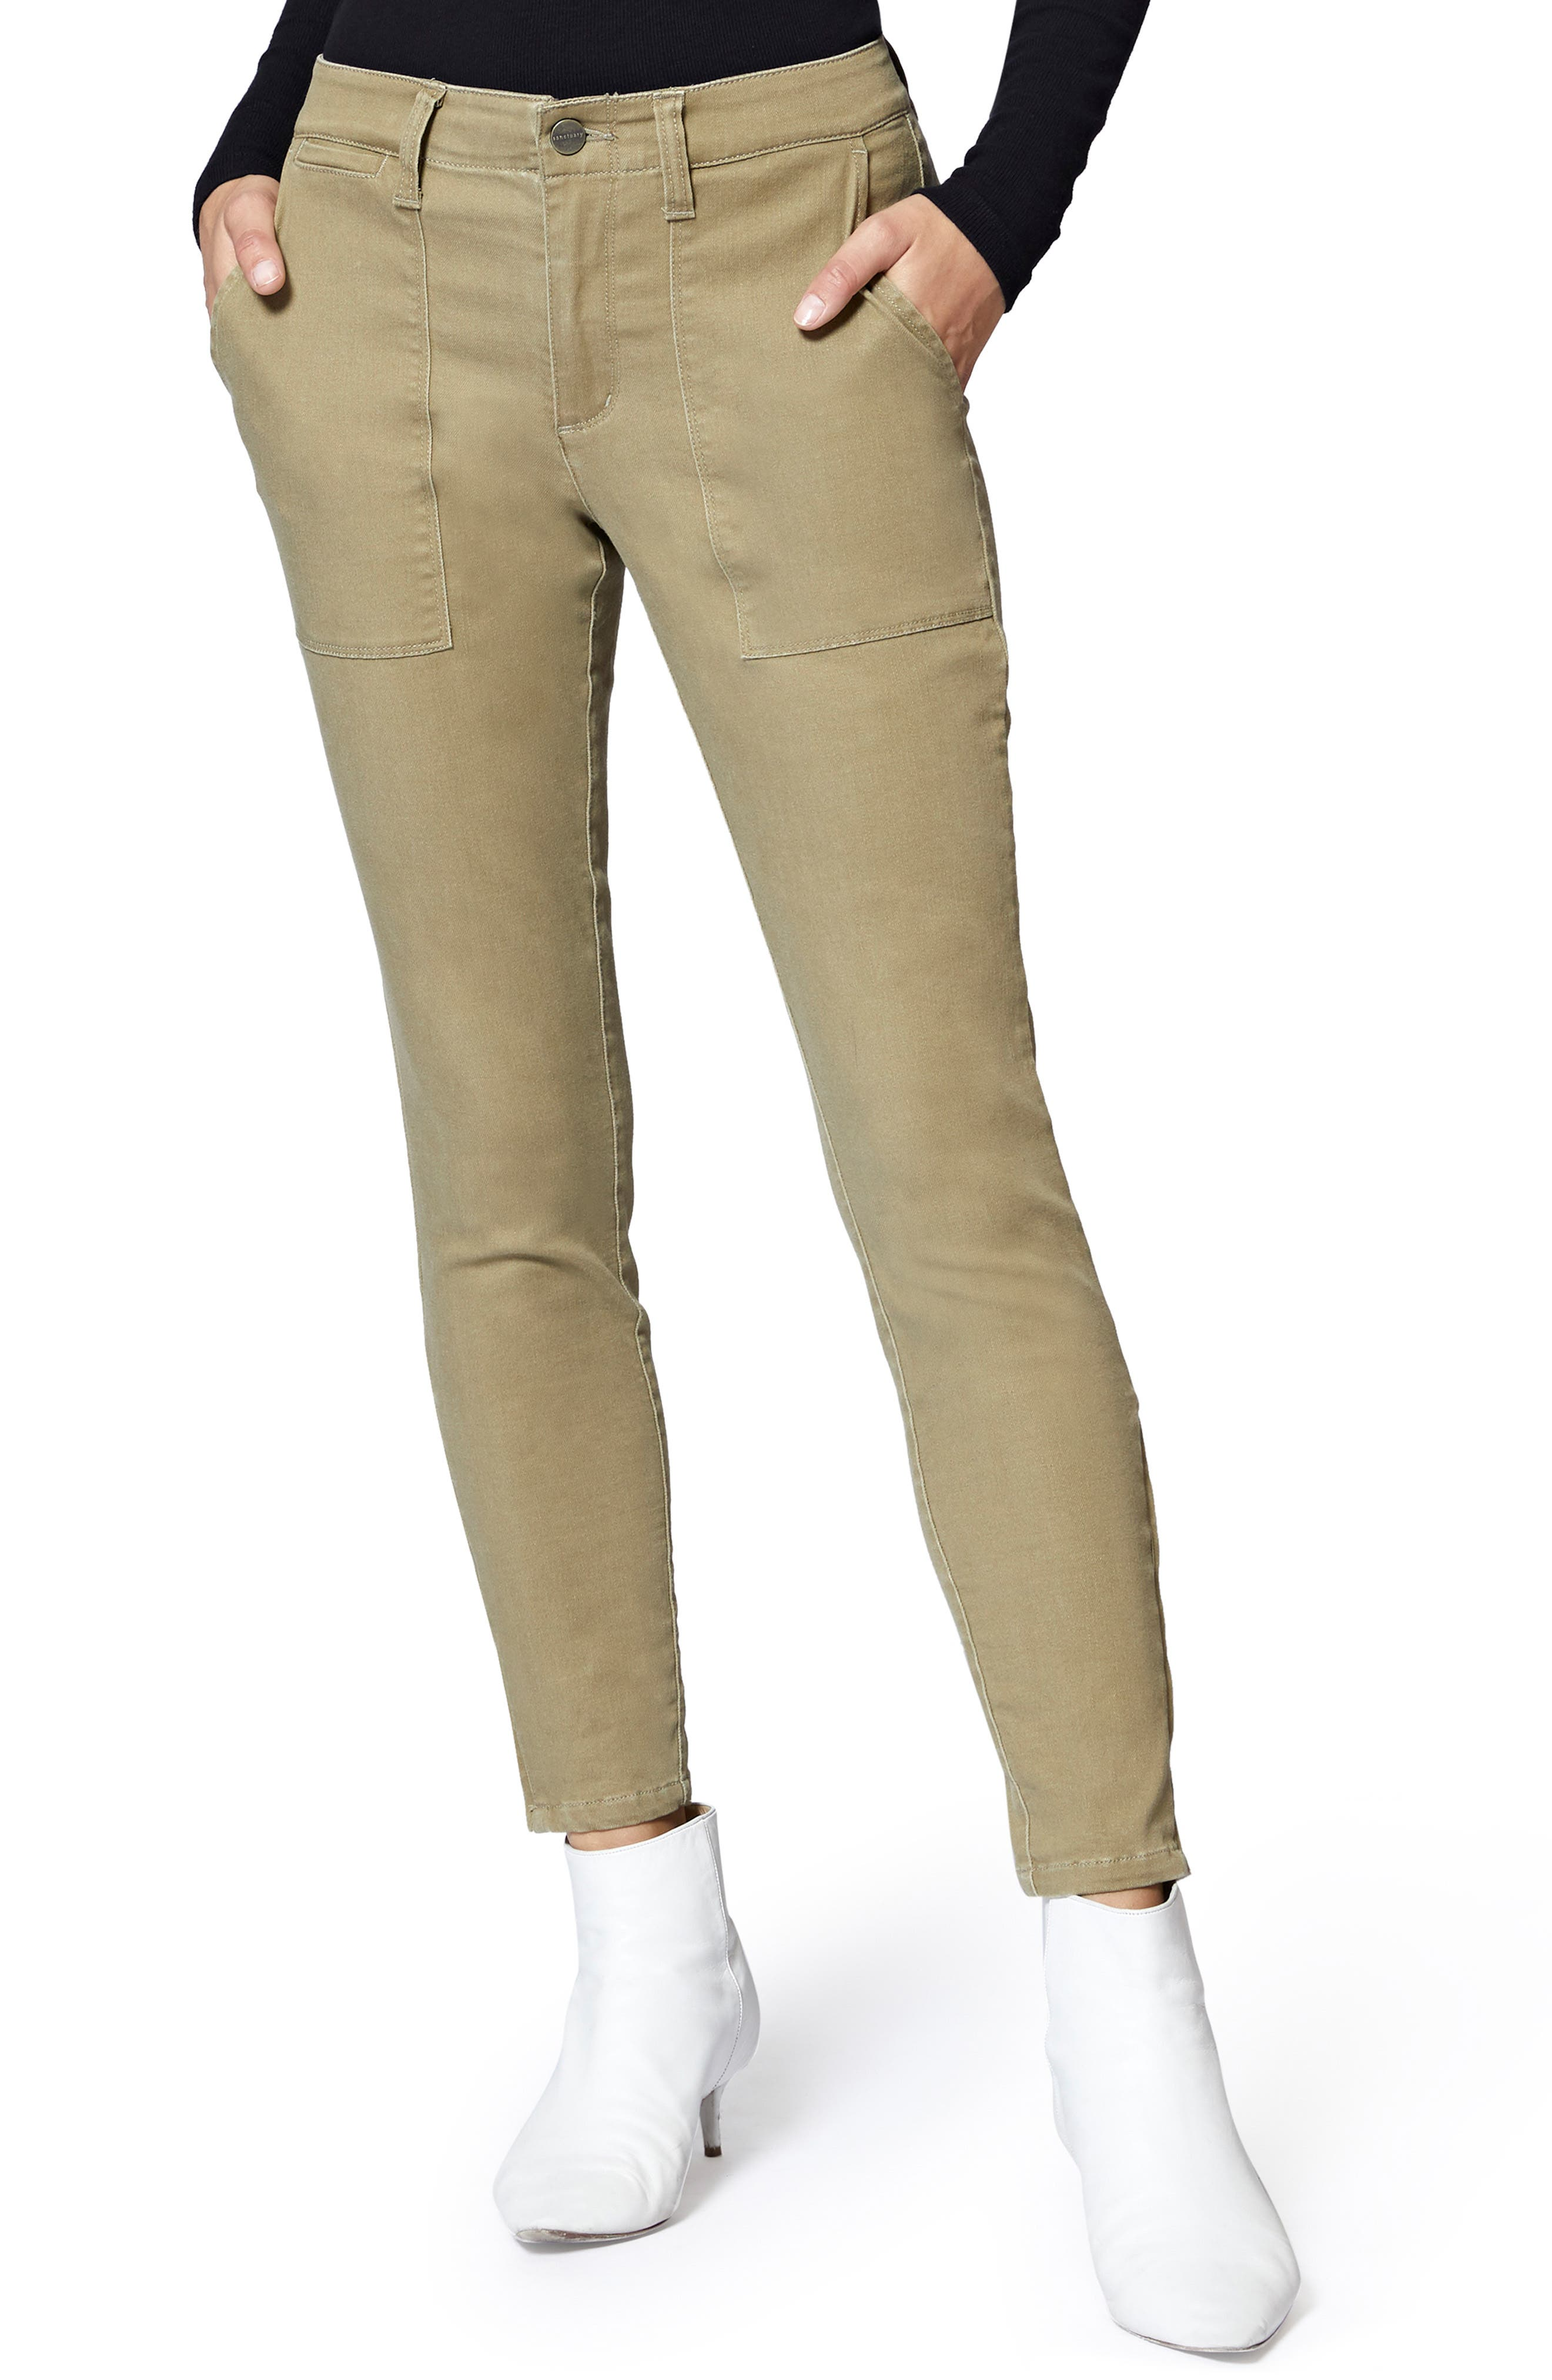 Fast Track Skinny Chino Pants,                             Main thumbnail 1, color,                             PROSPERITY GREEN